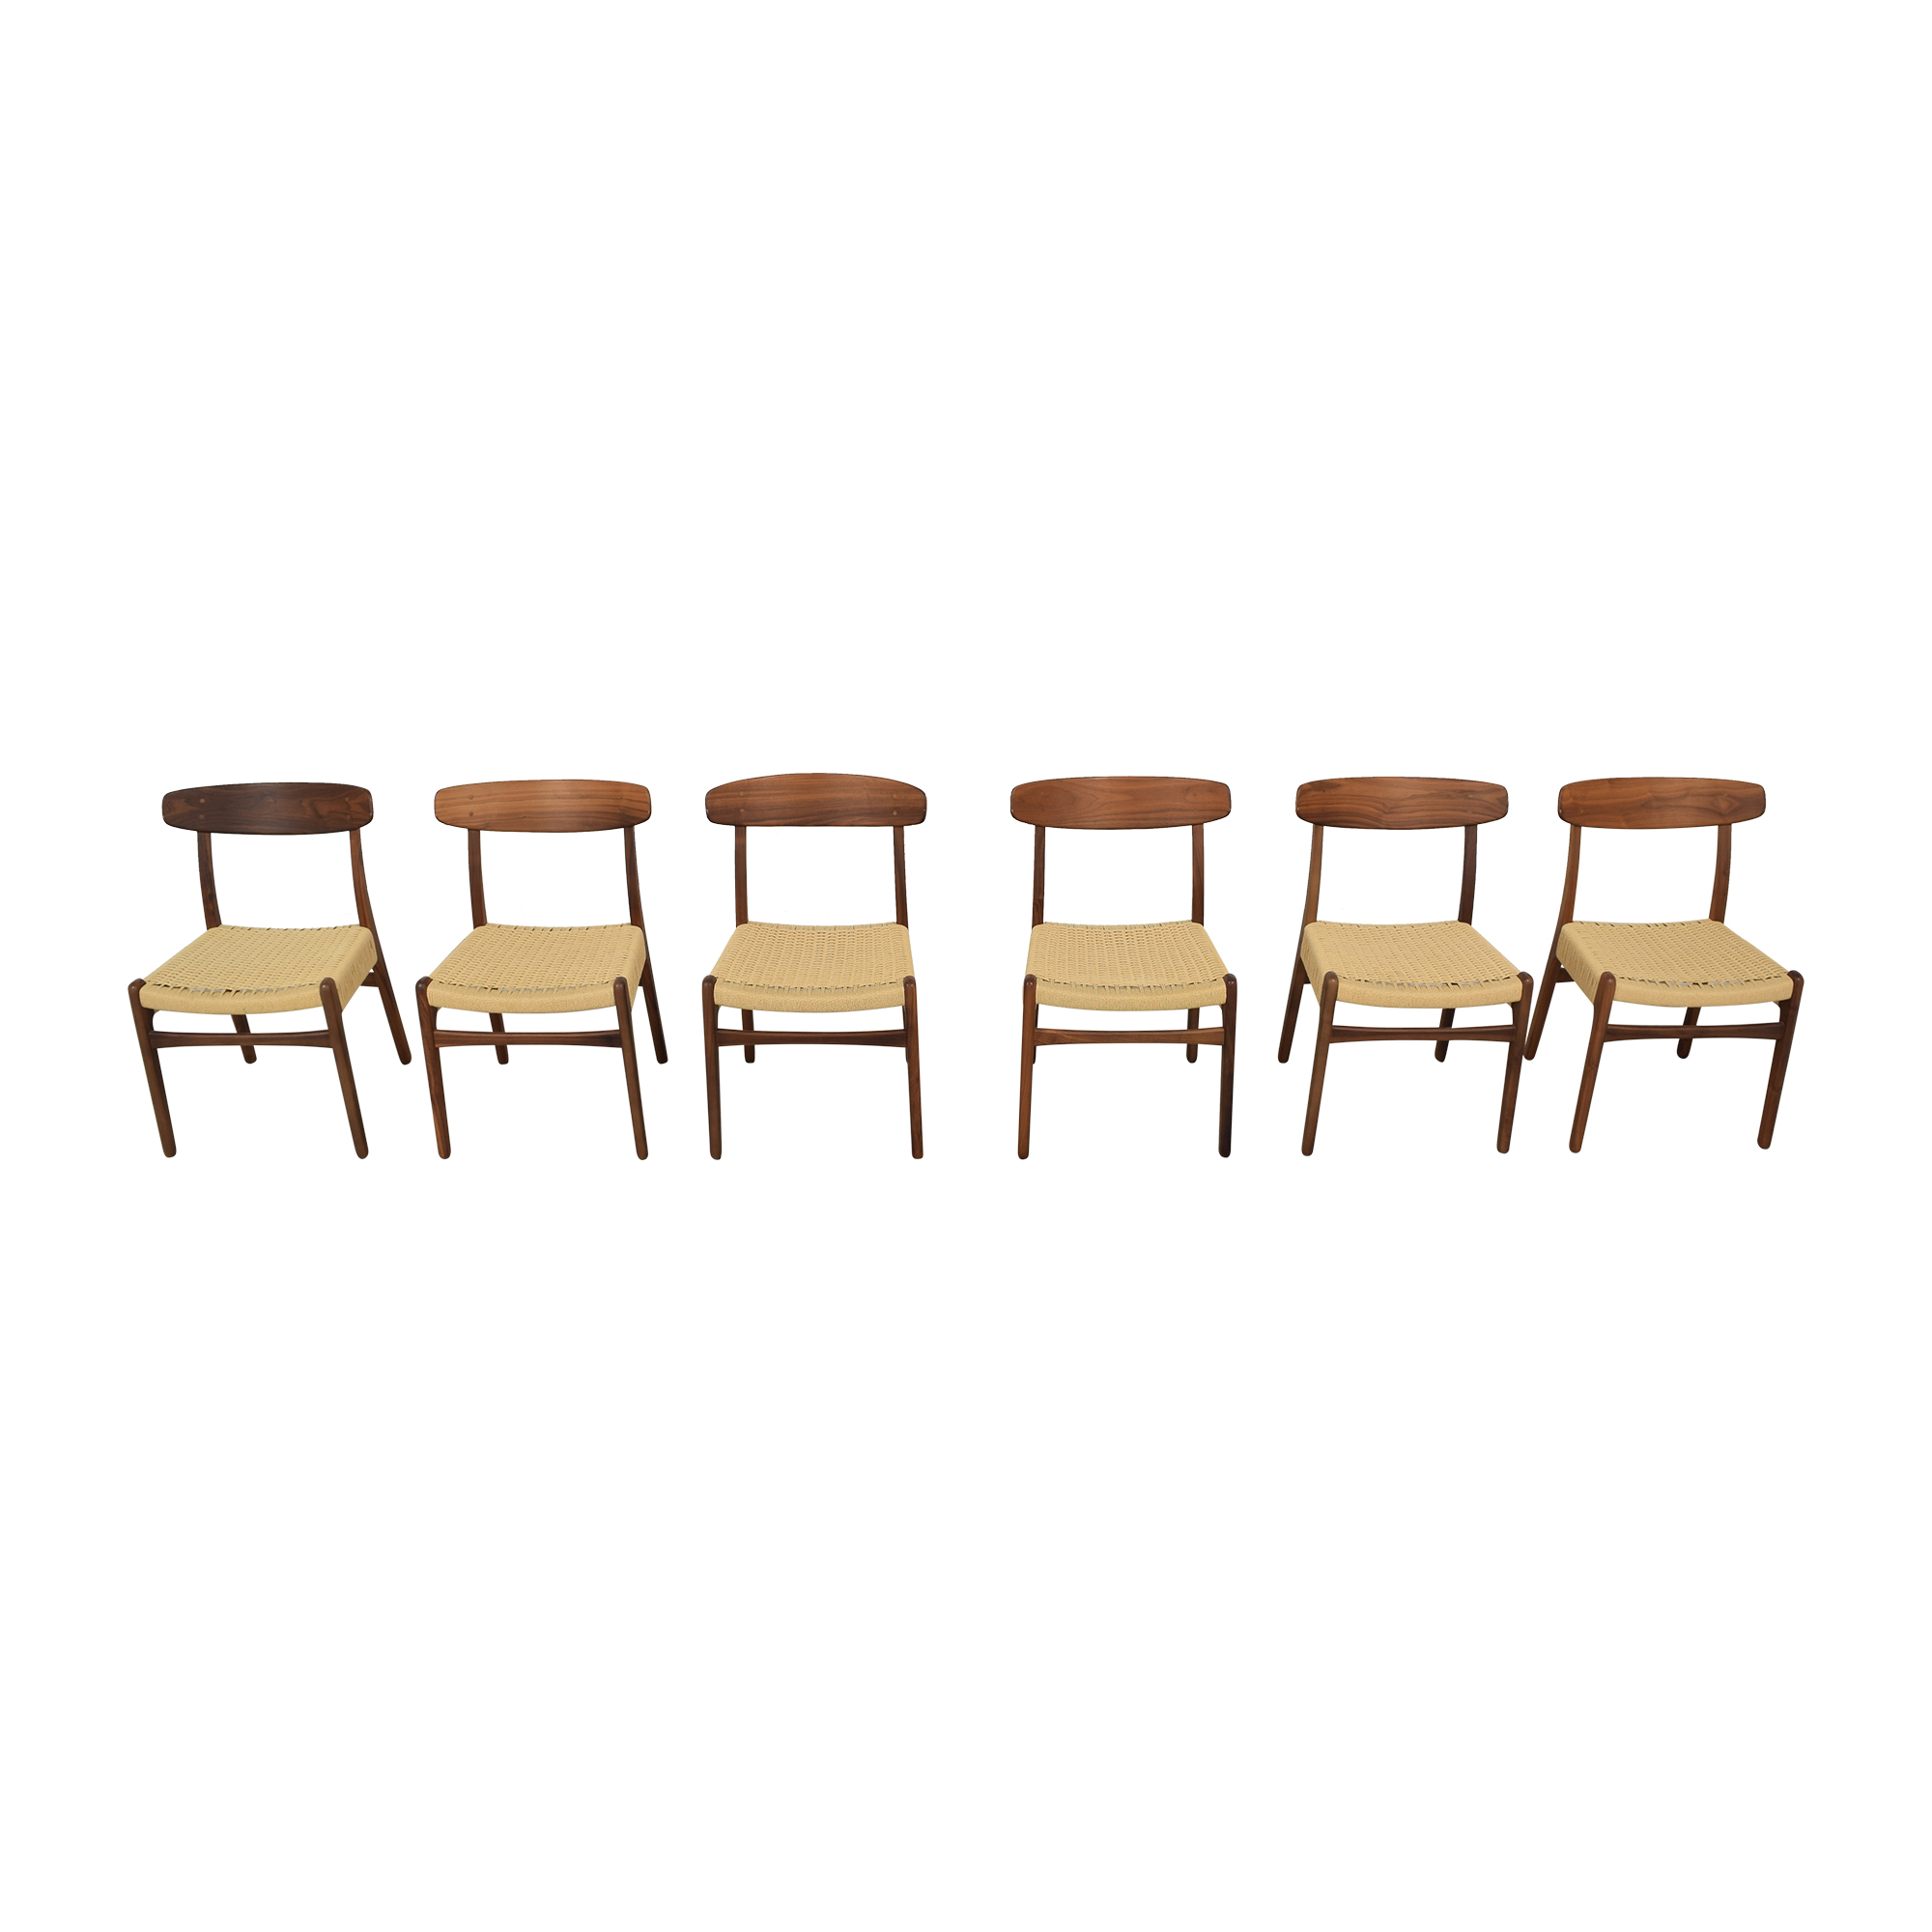 Sit Down New York Hans Wegner-Style Mid Century Dining Chairs Dining Chairs